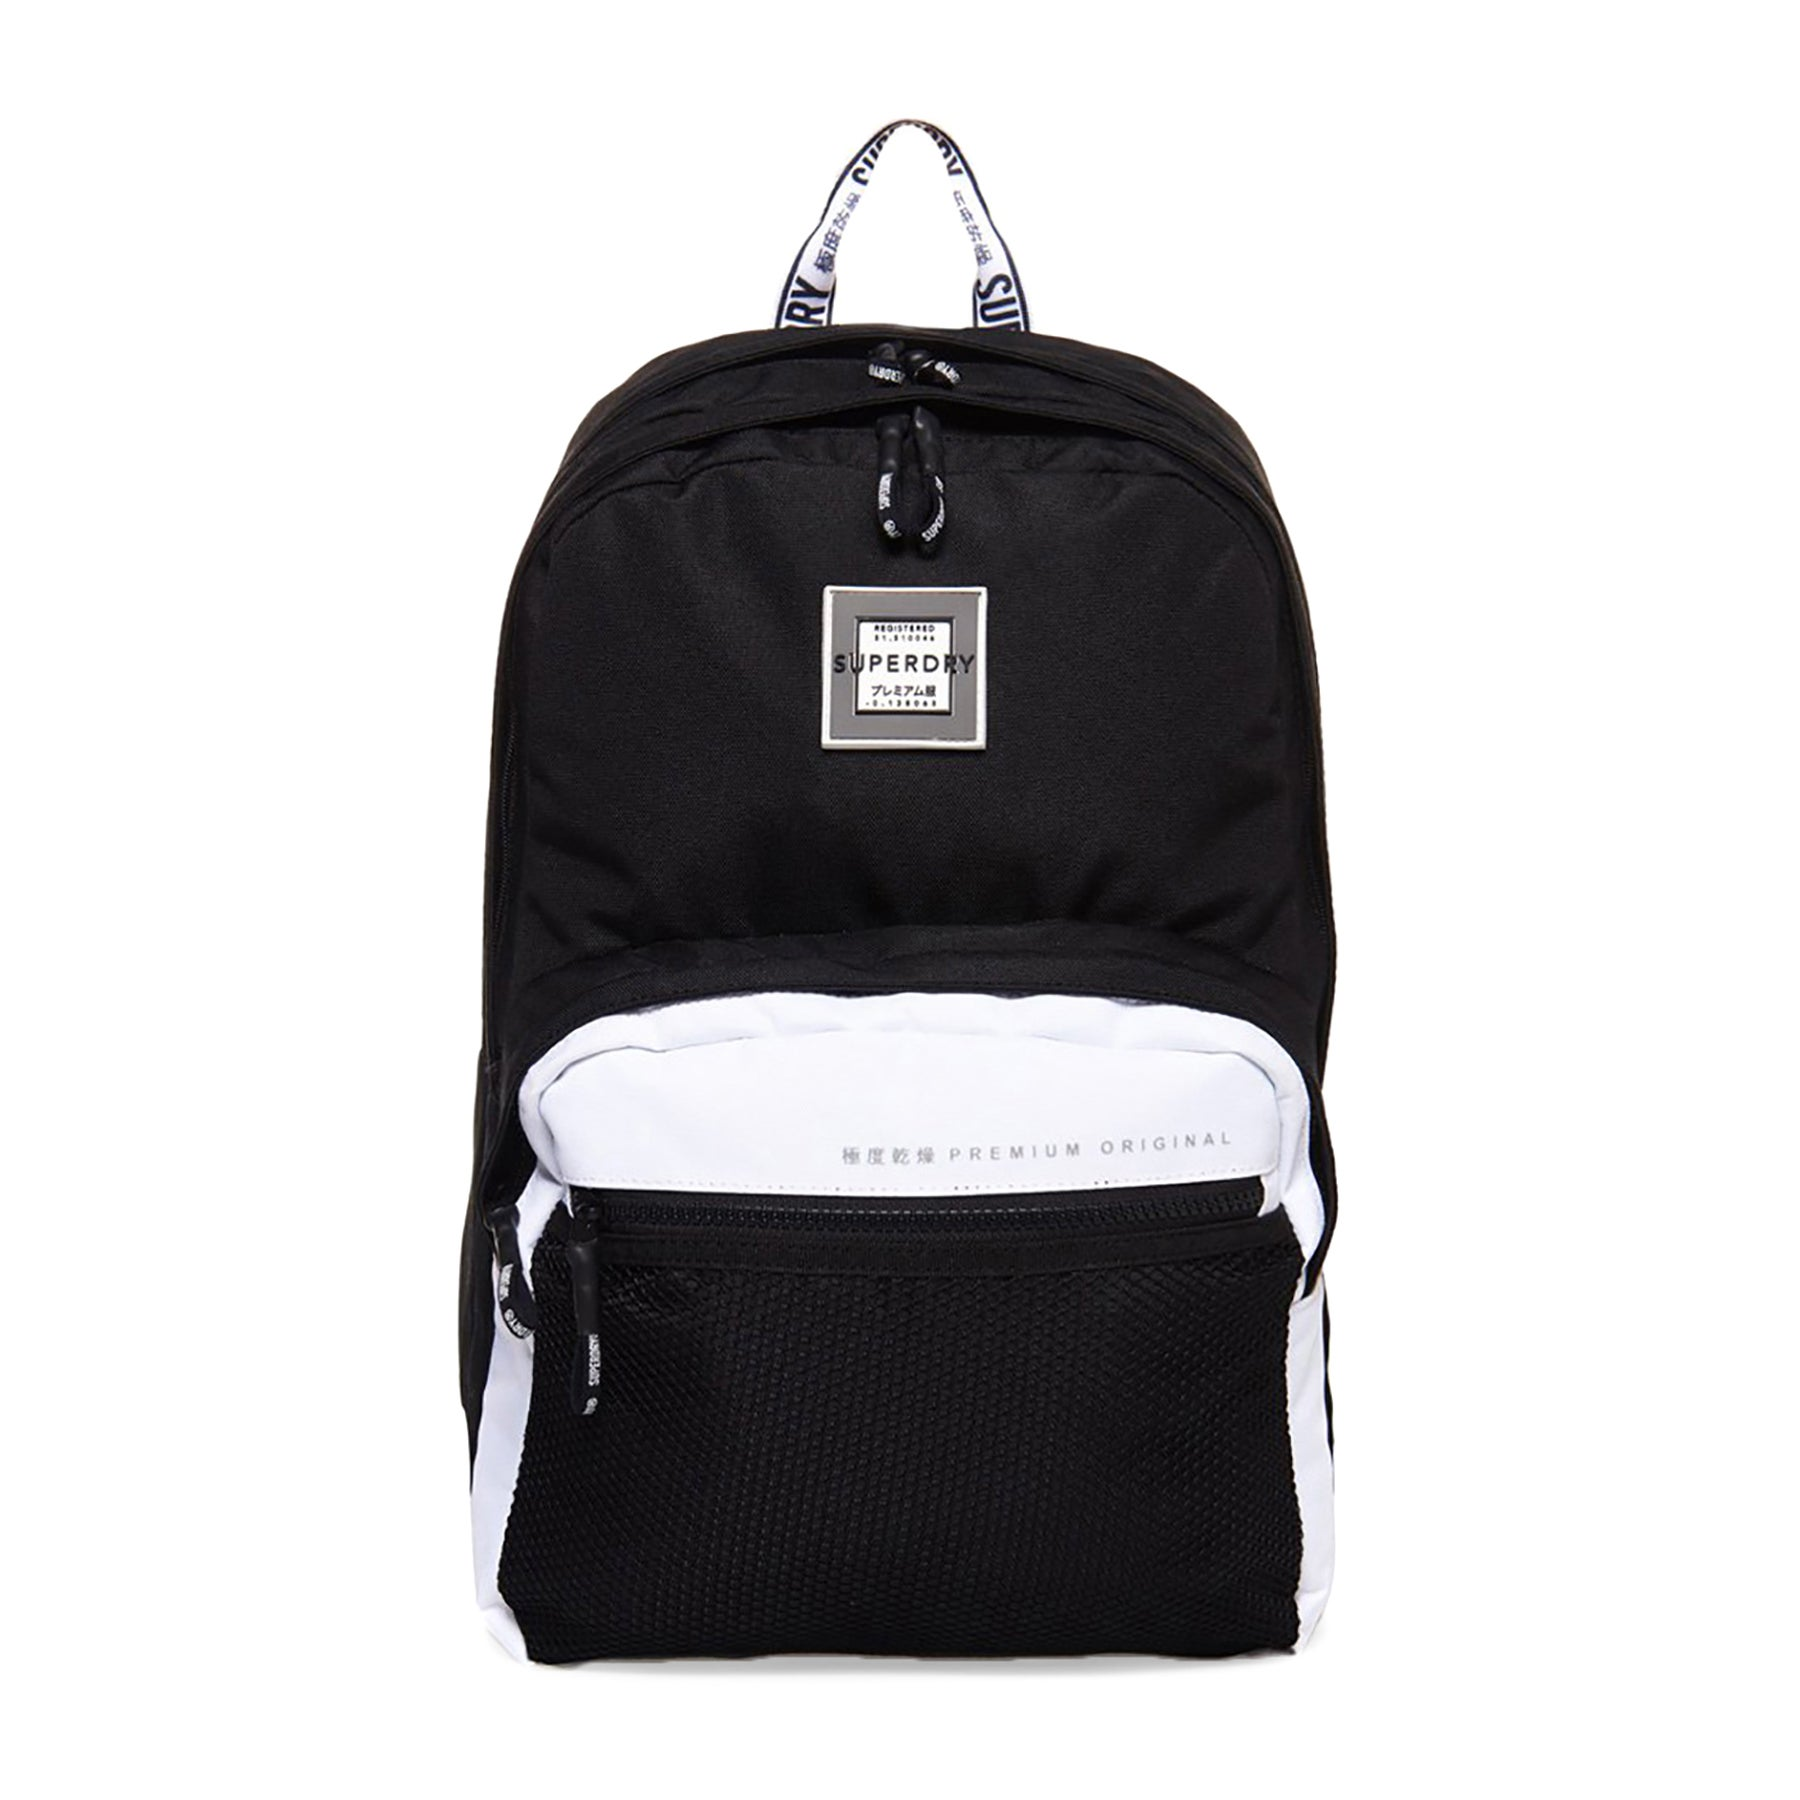 Superdry Hayden Backpack - Black White